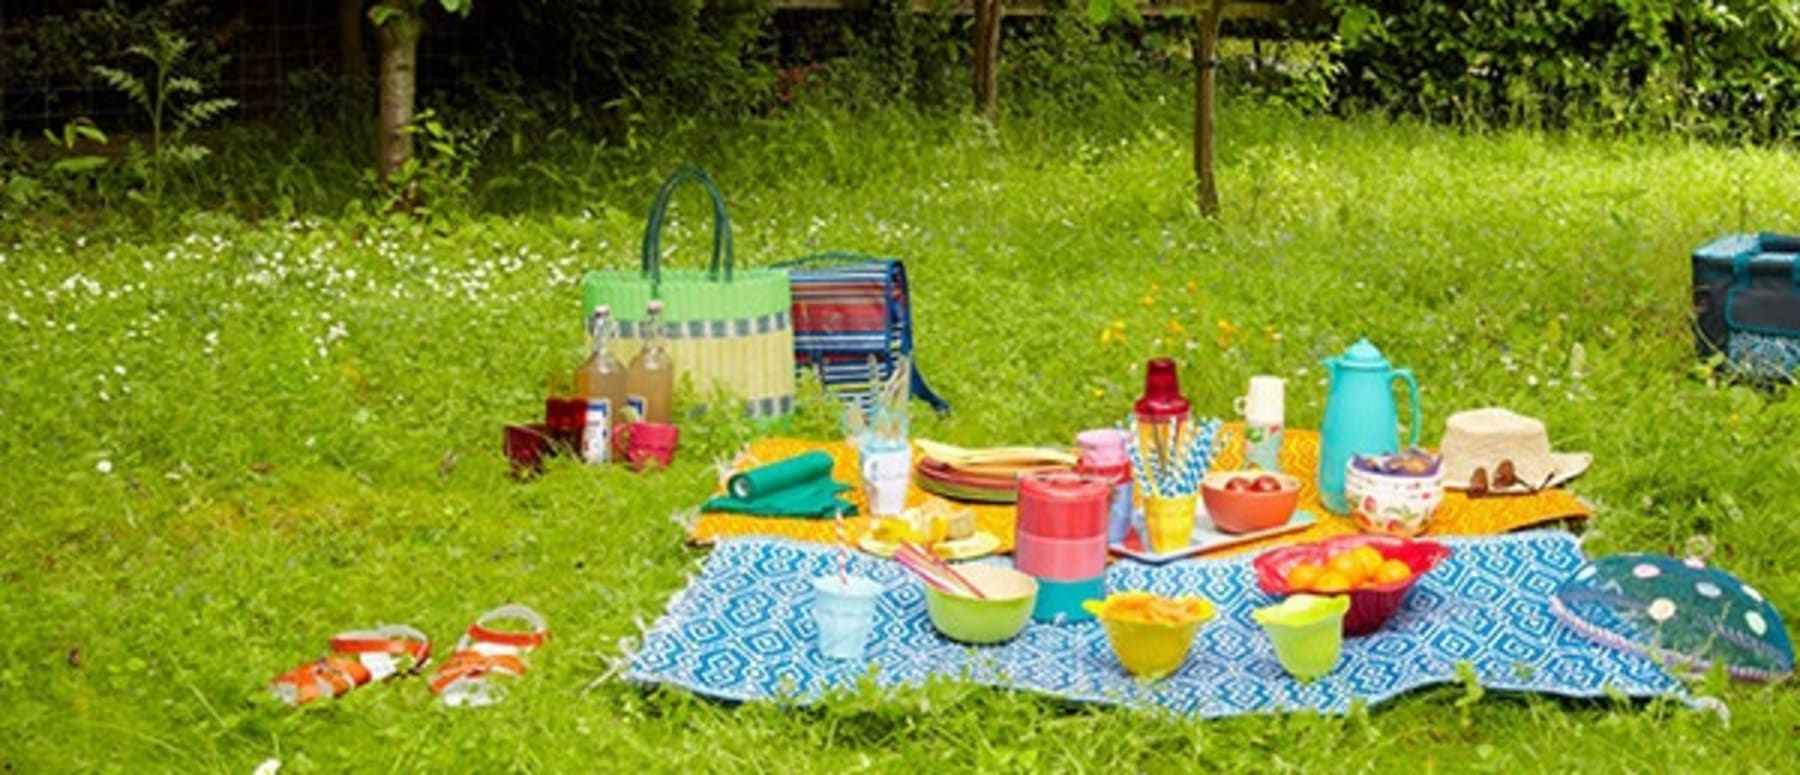 Great places for picnics